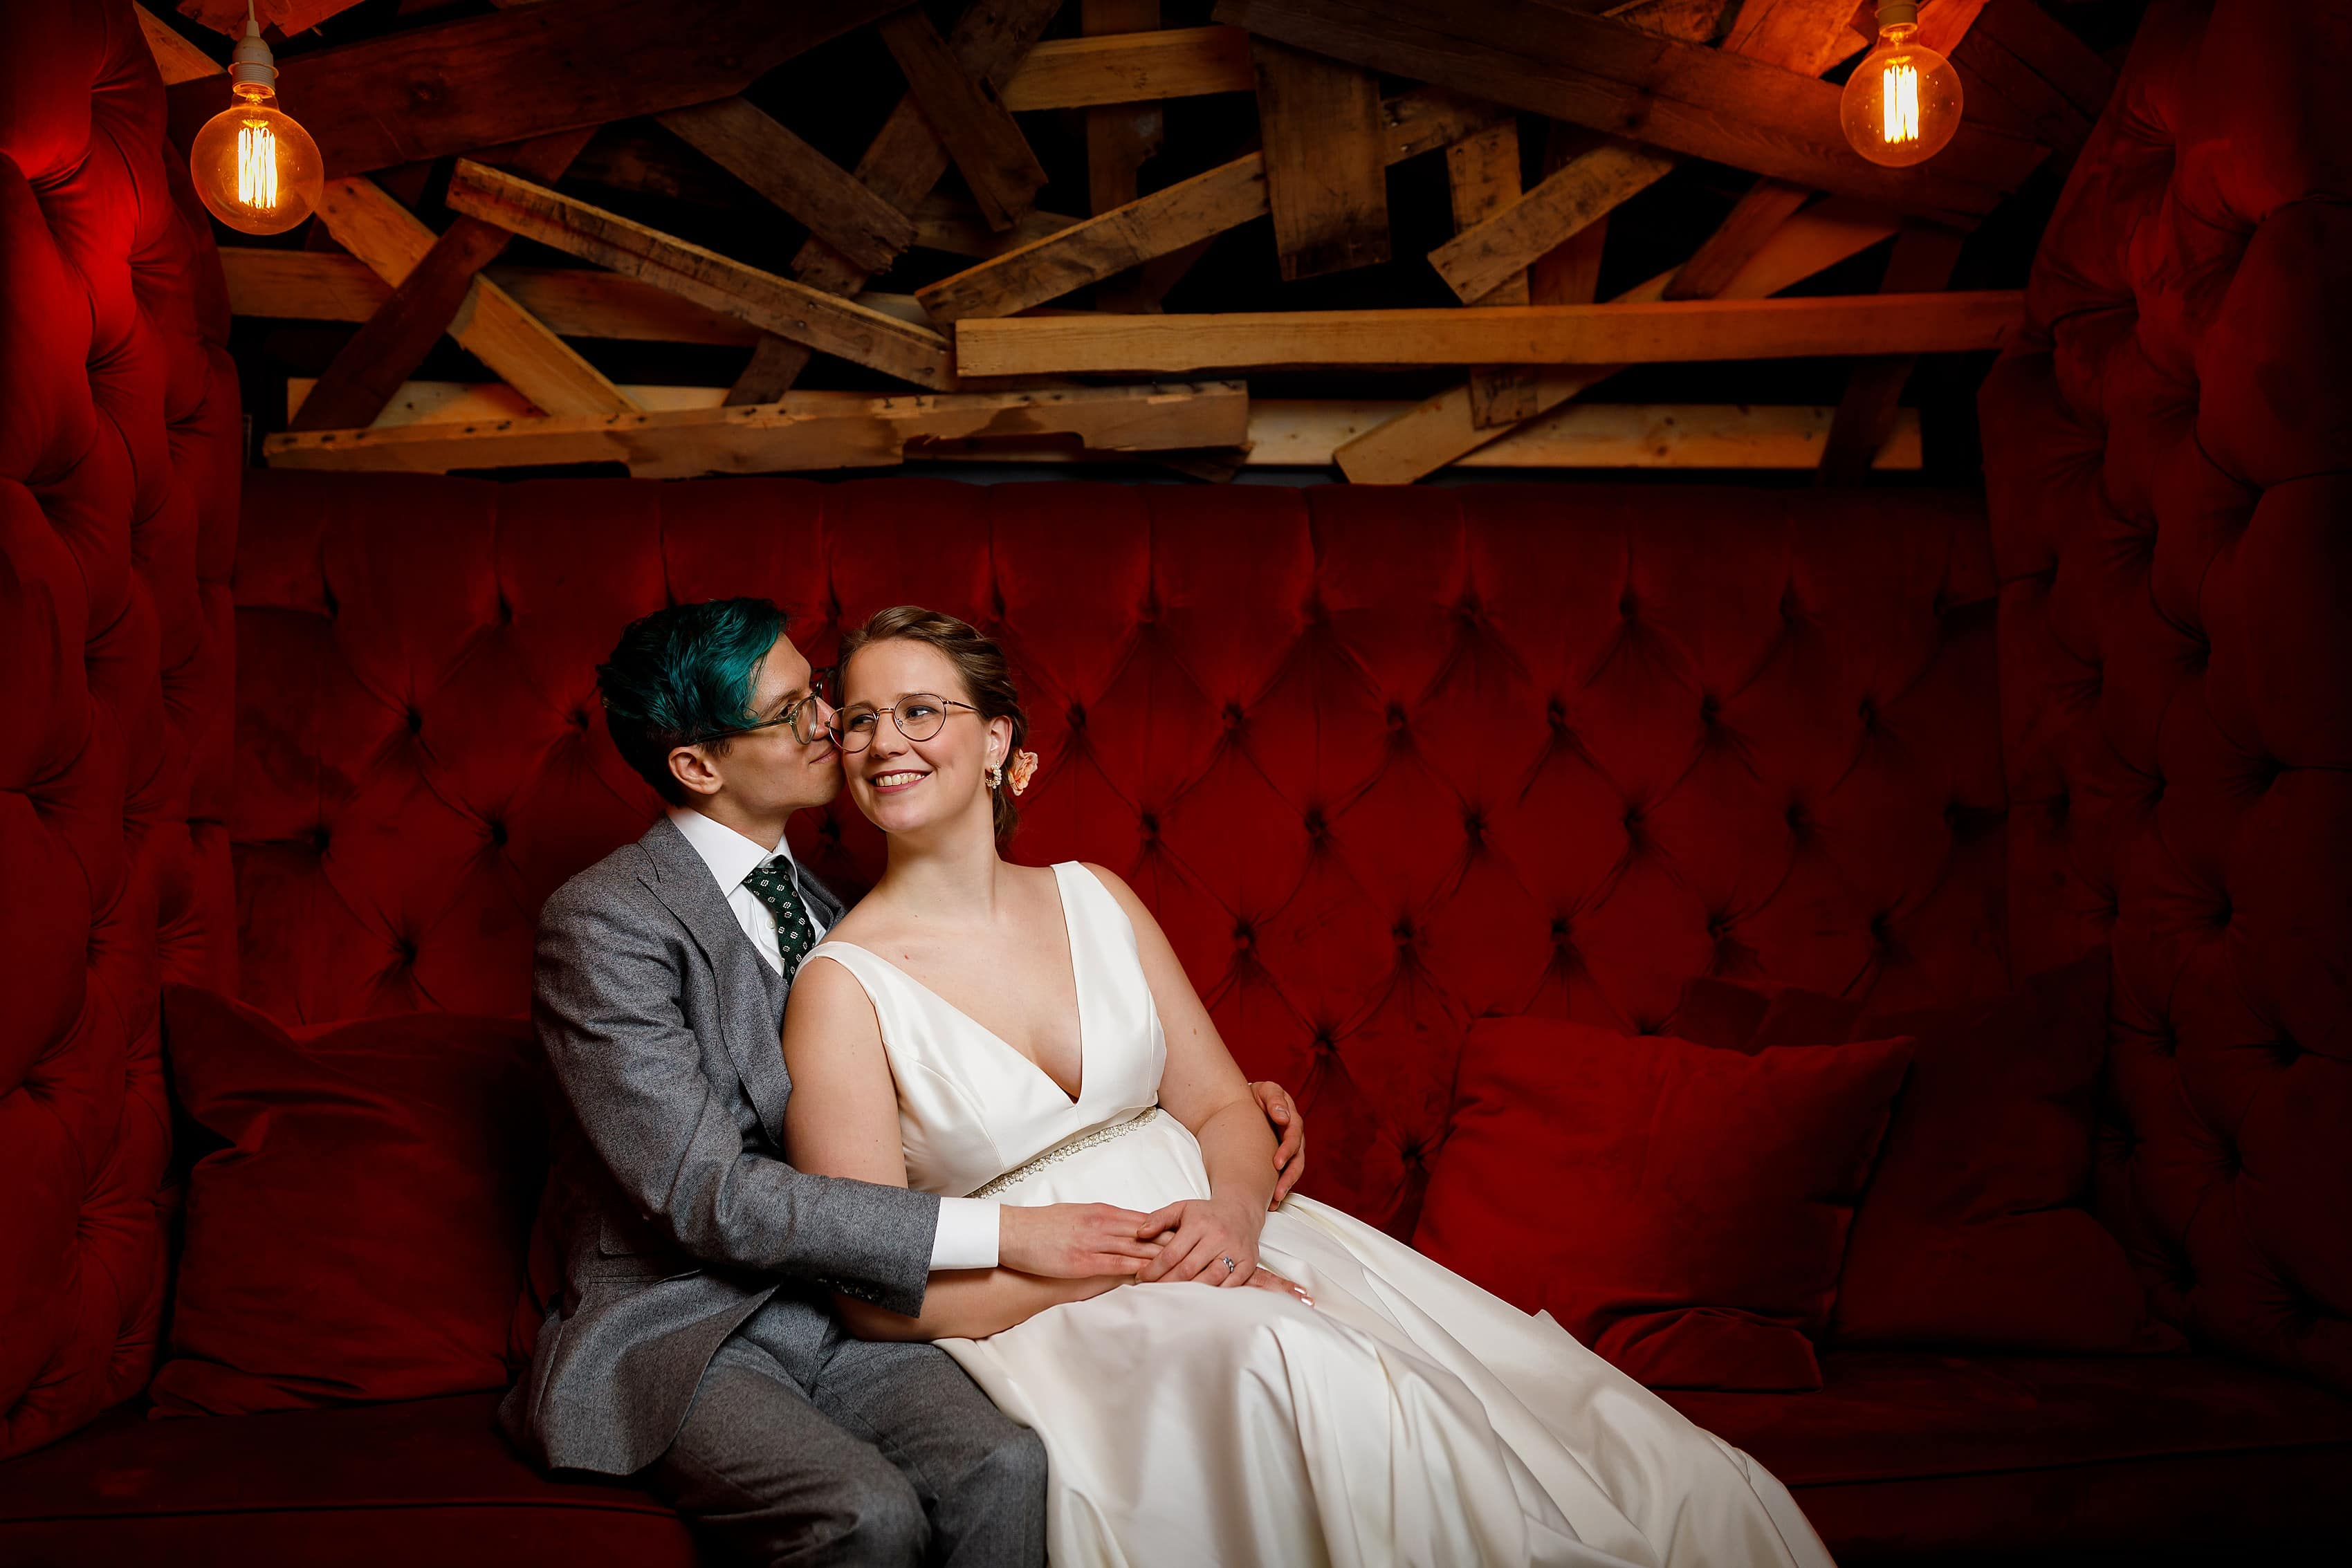 wedding portrait on red couch at Rust Belt Market in downtown Ferndale, Michigan